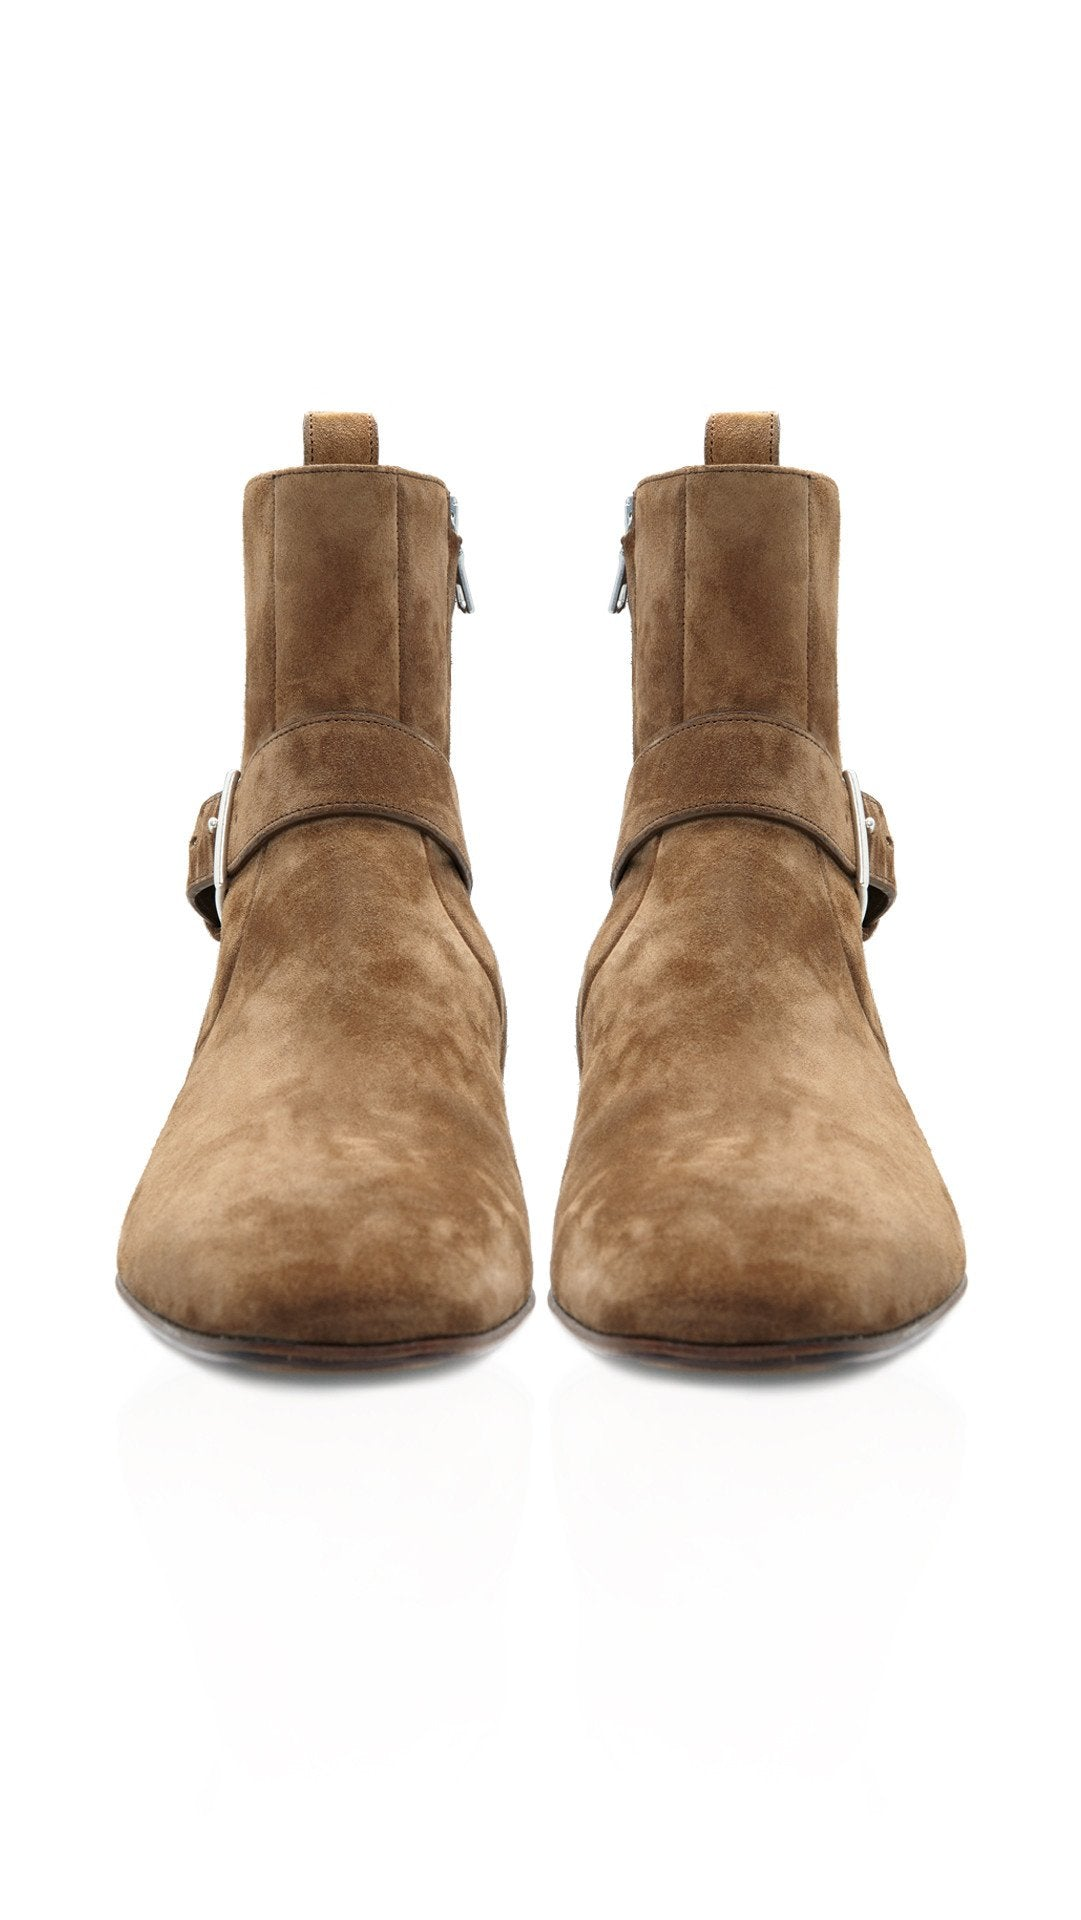 Zipped Strap Boot - Cigaro Suede